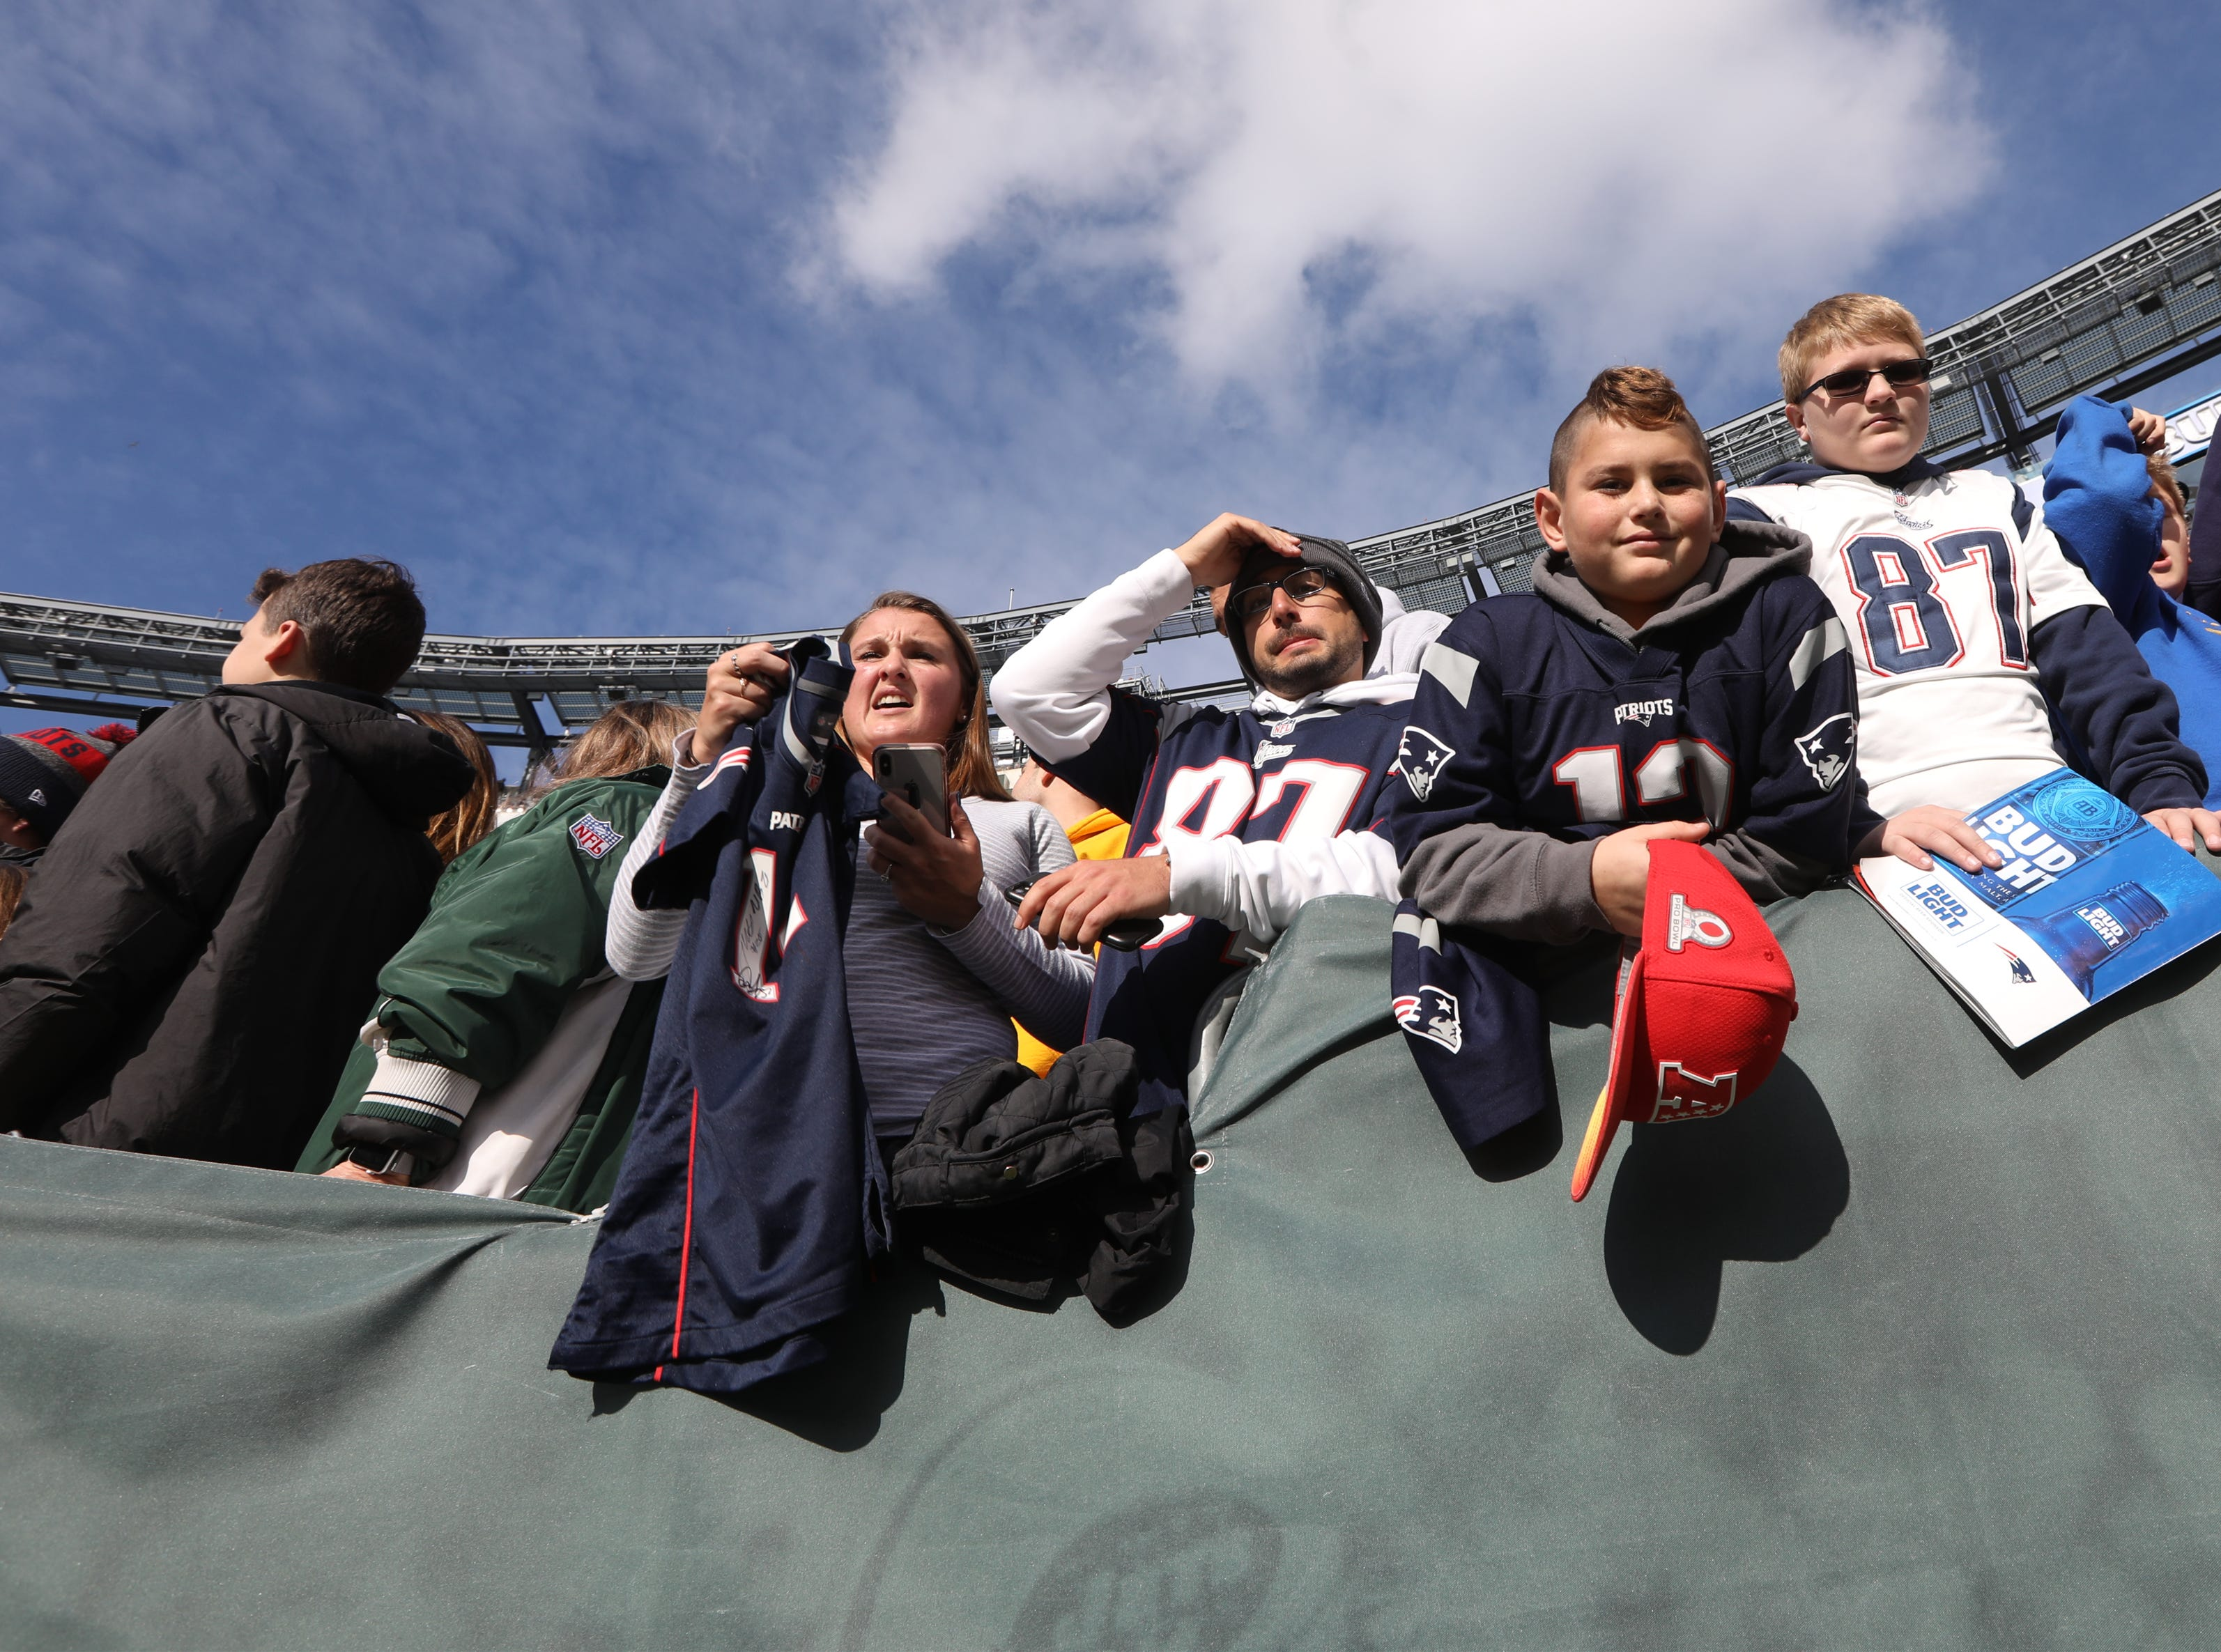 Patriot fans wait to see their favorite players befor the game. November 25, 2018